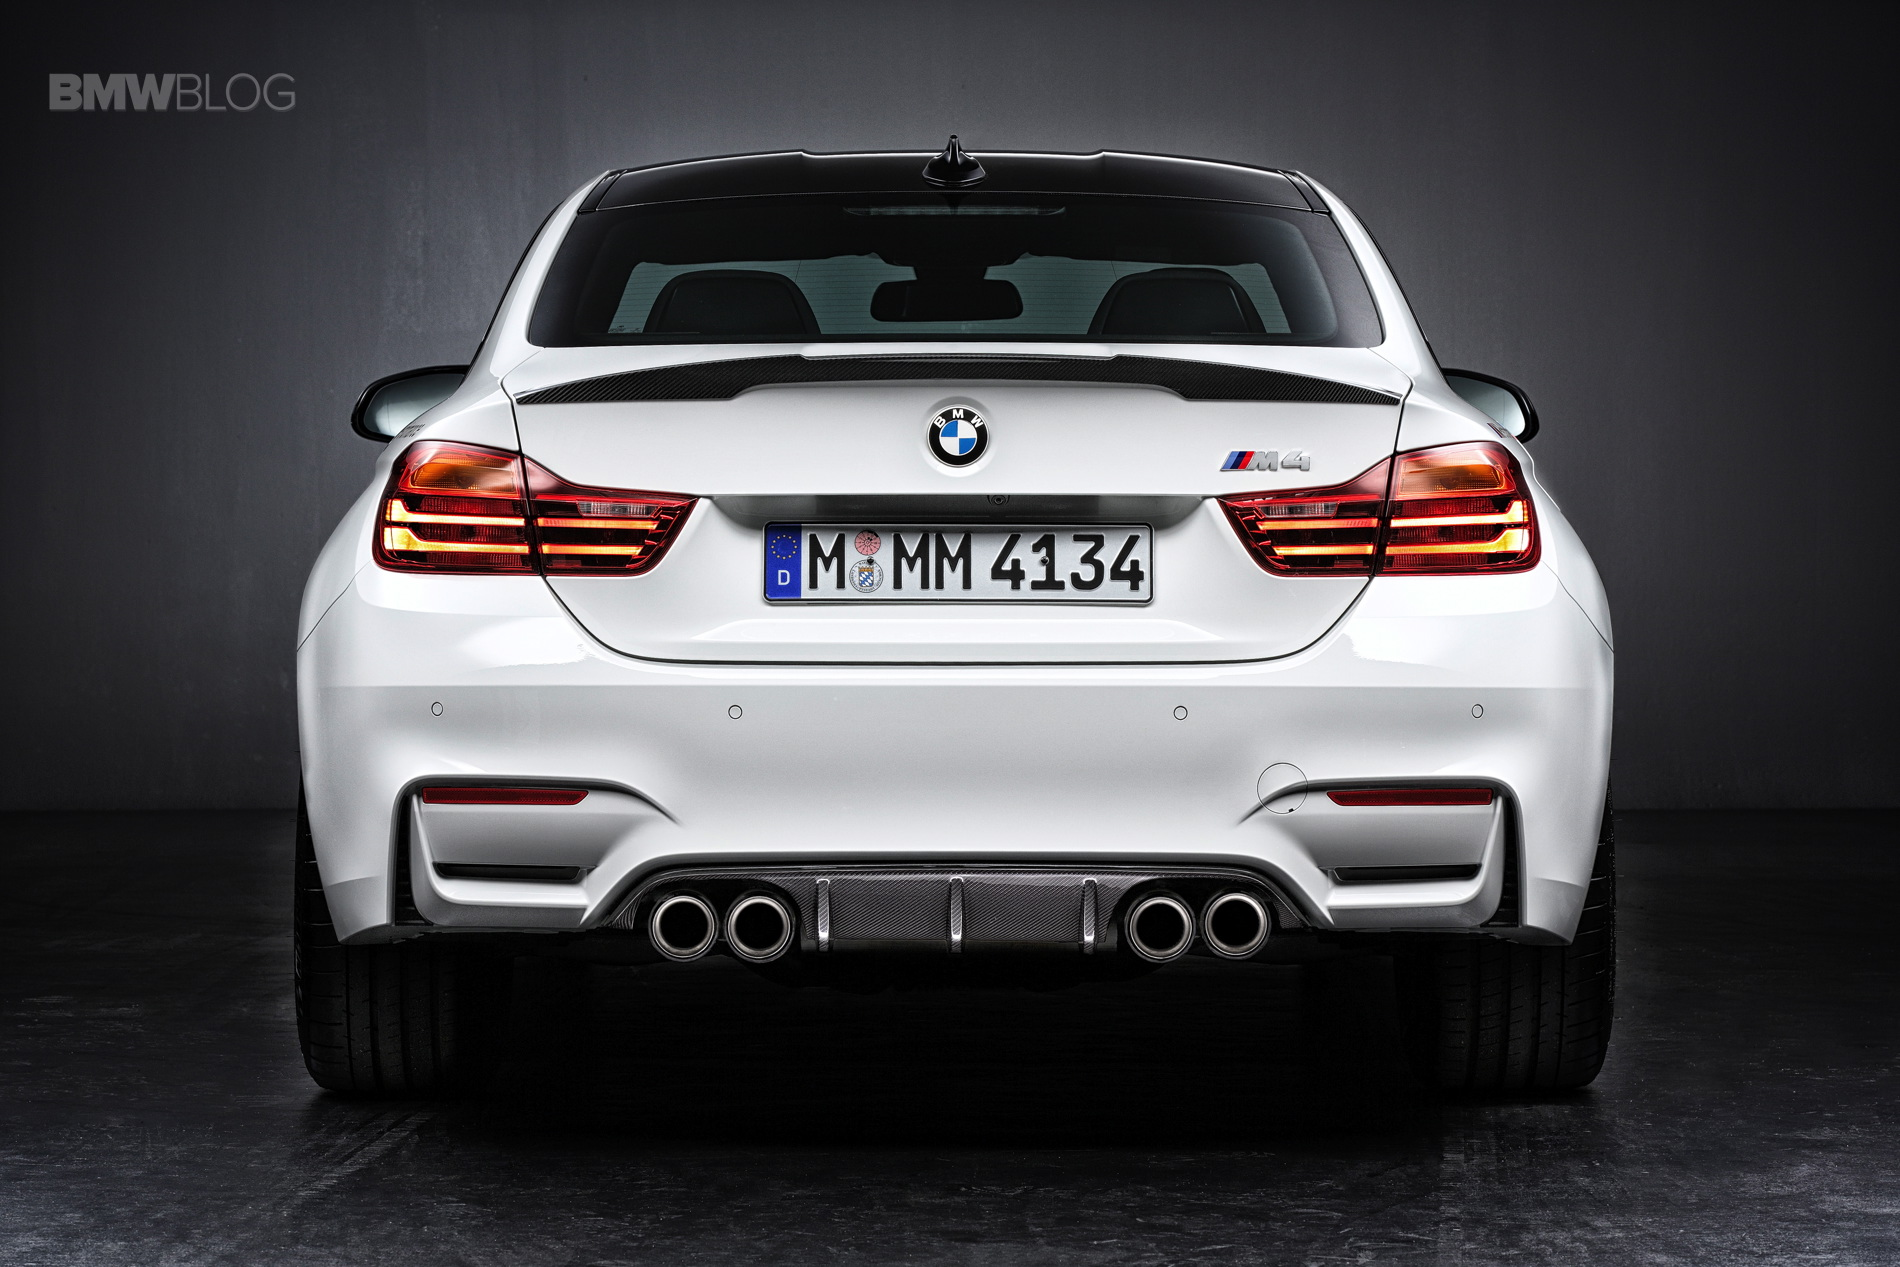 BMW 428I Convertible >> New M Performance parts for BMW M3, BMW M4 Coupe and BMW M4 Convertible